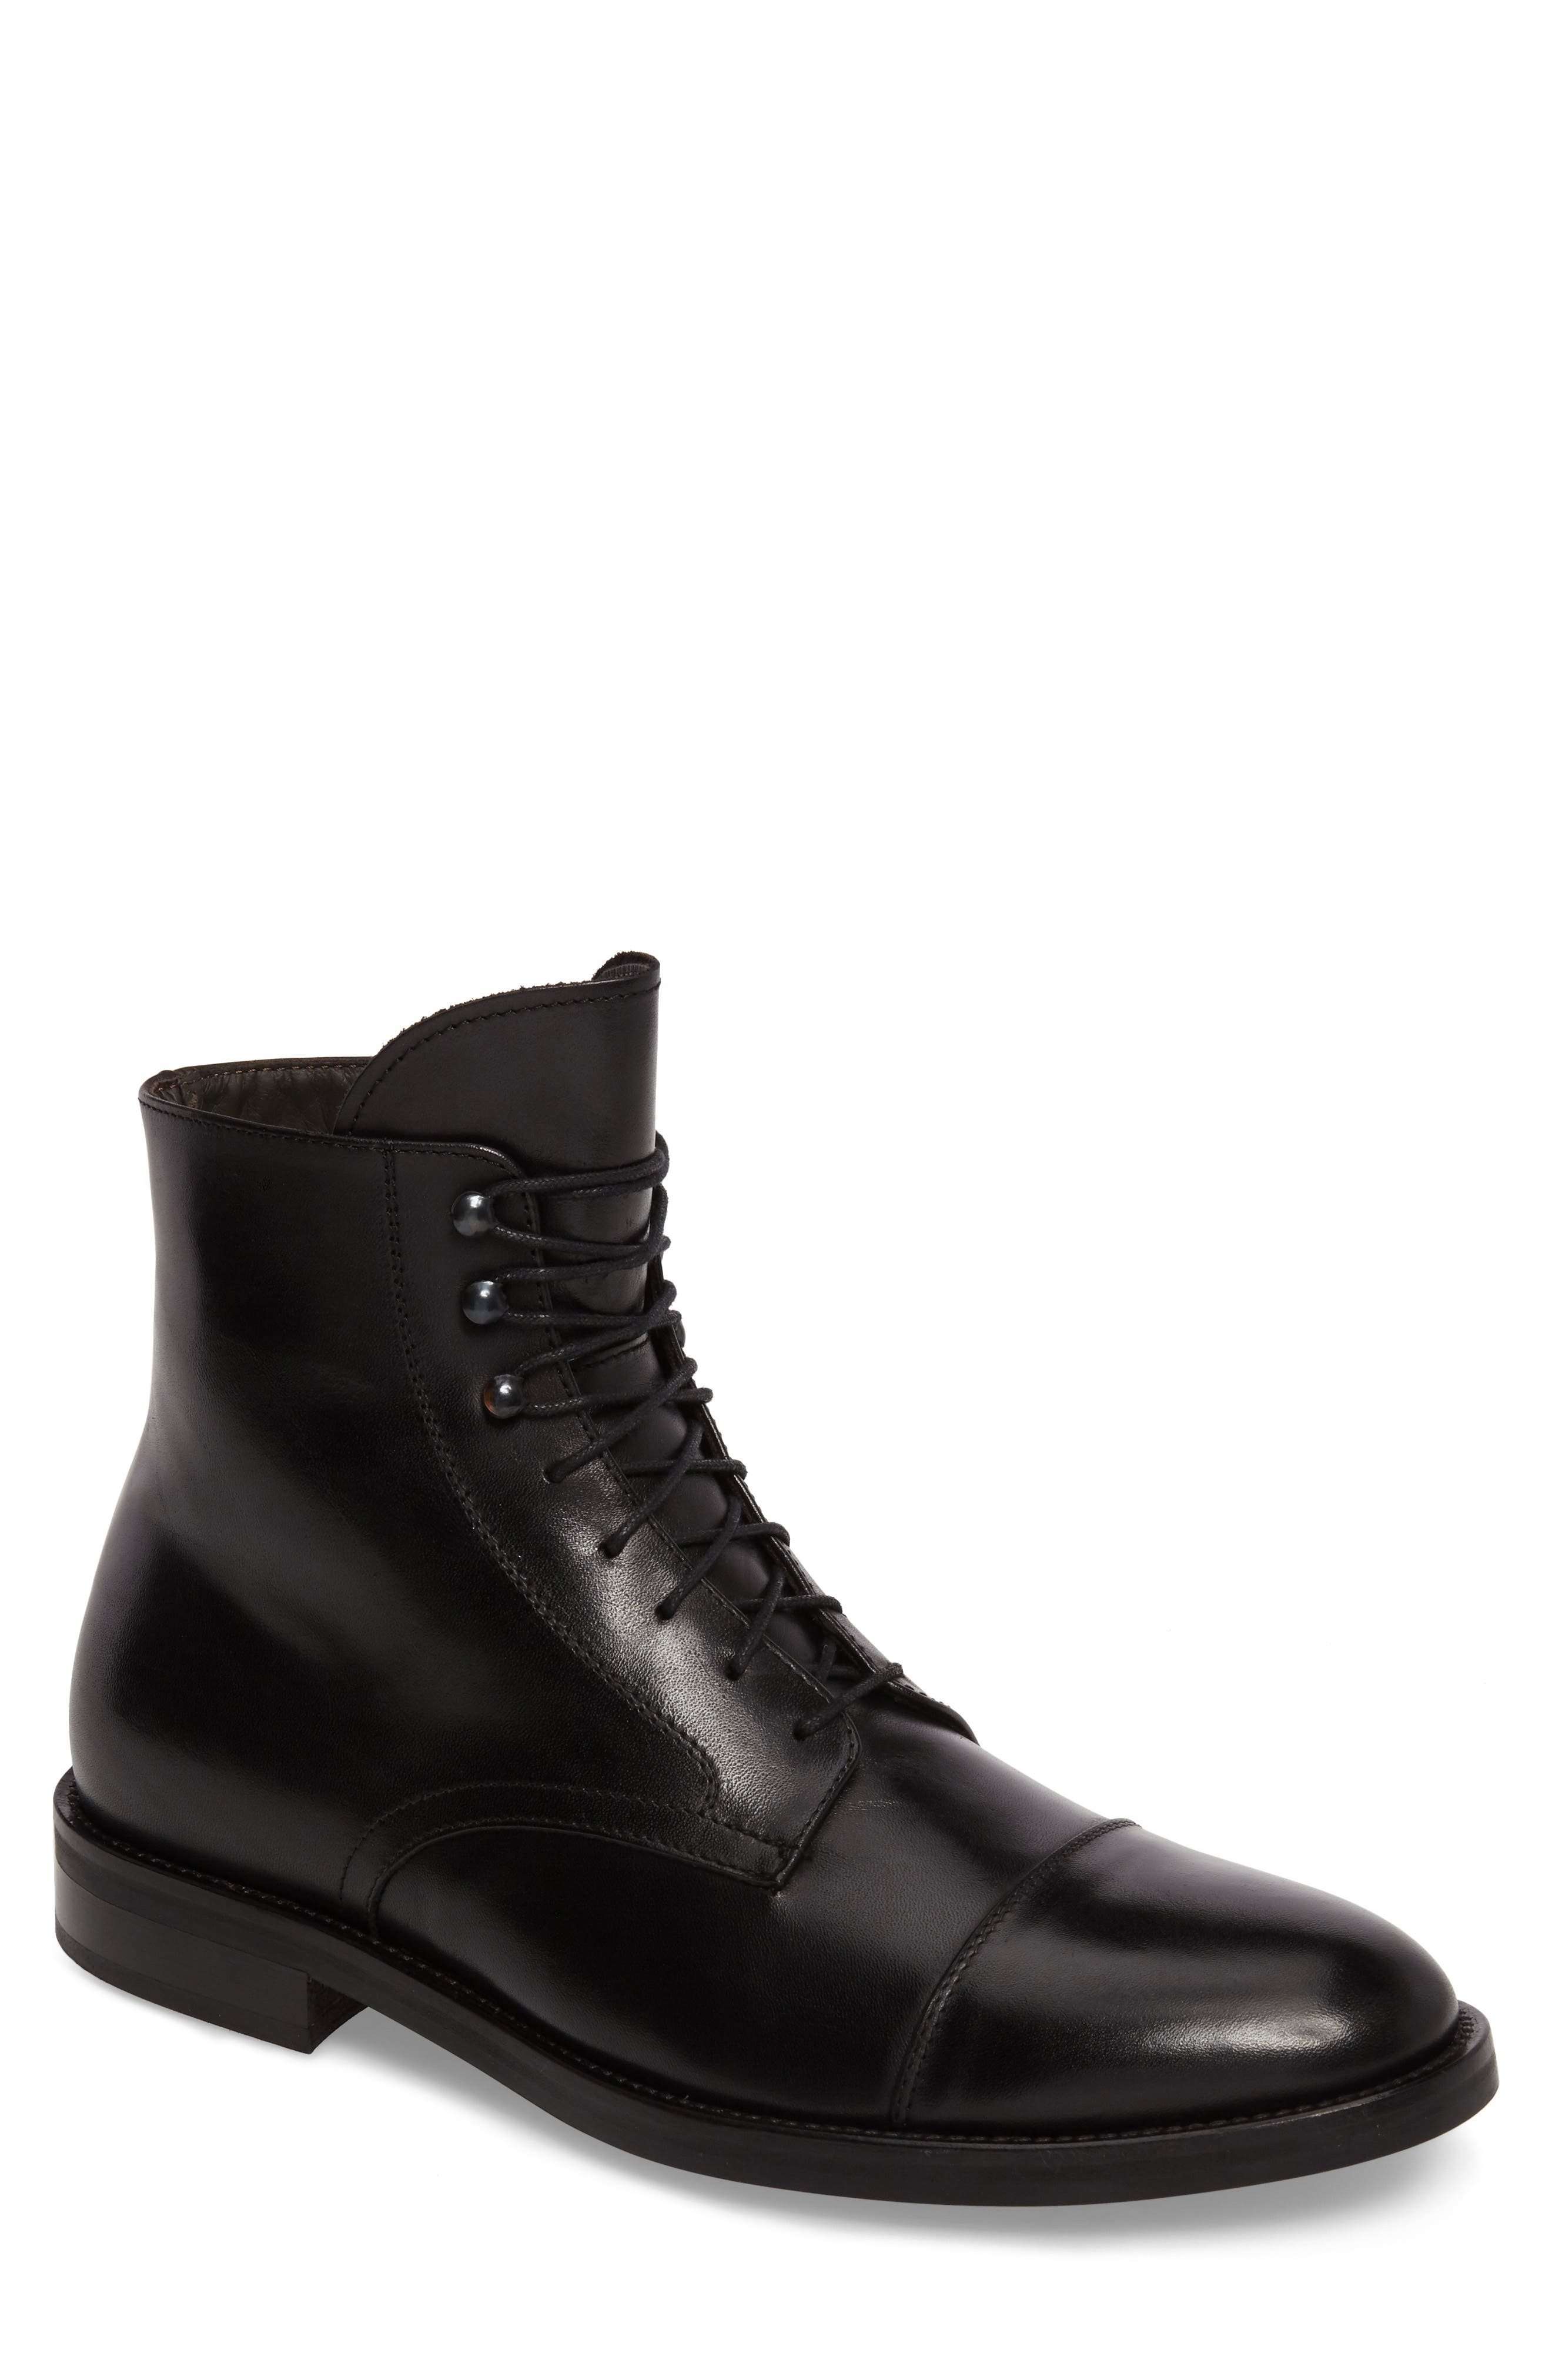 Henri Cap Toe Boot,                         Main,                         color, BLACK